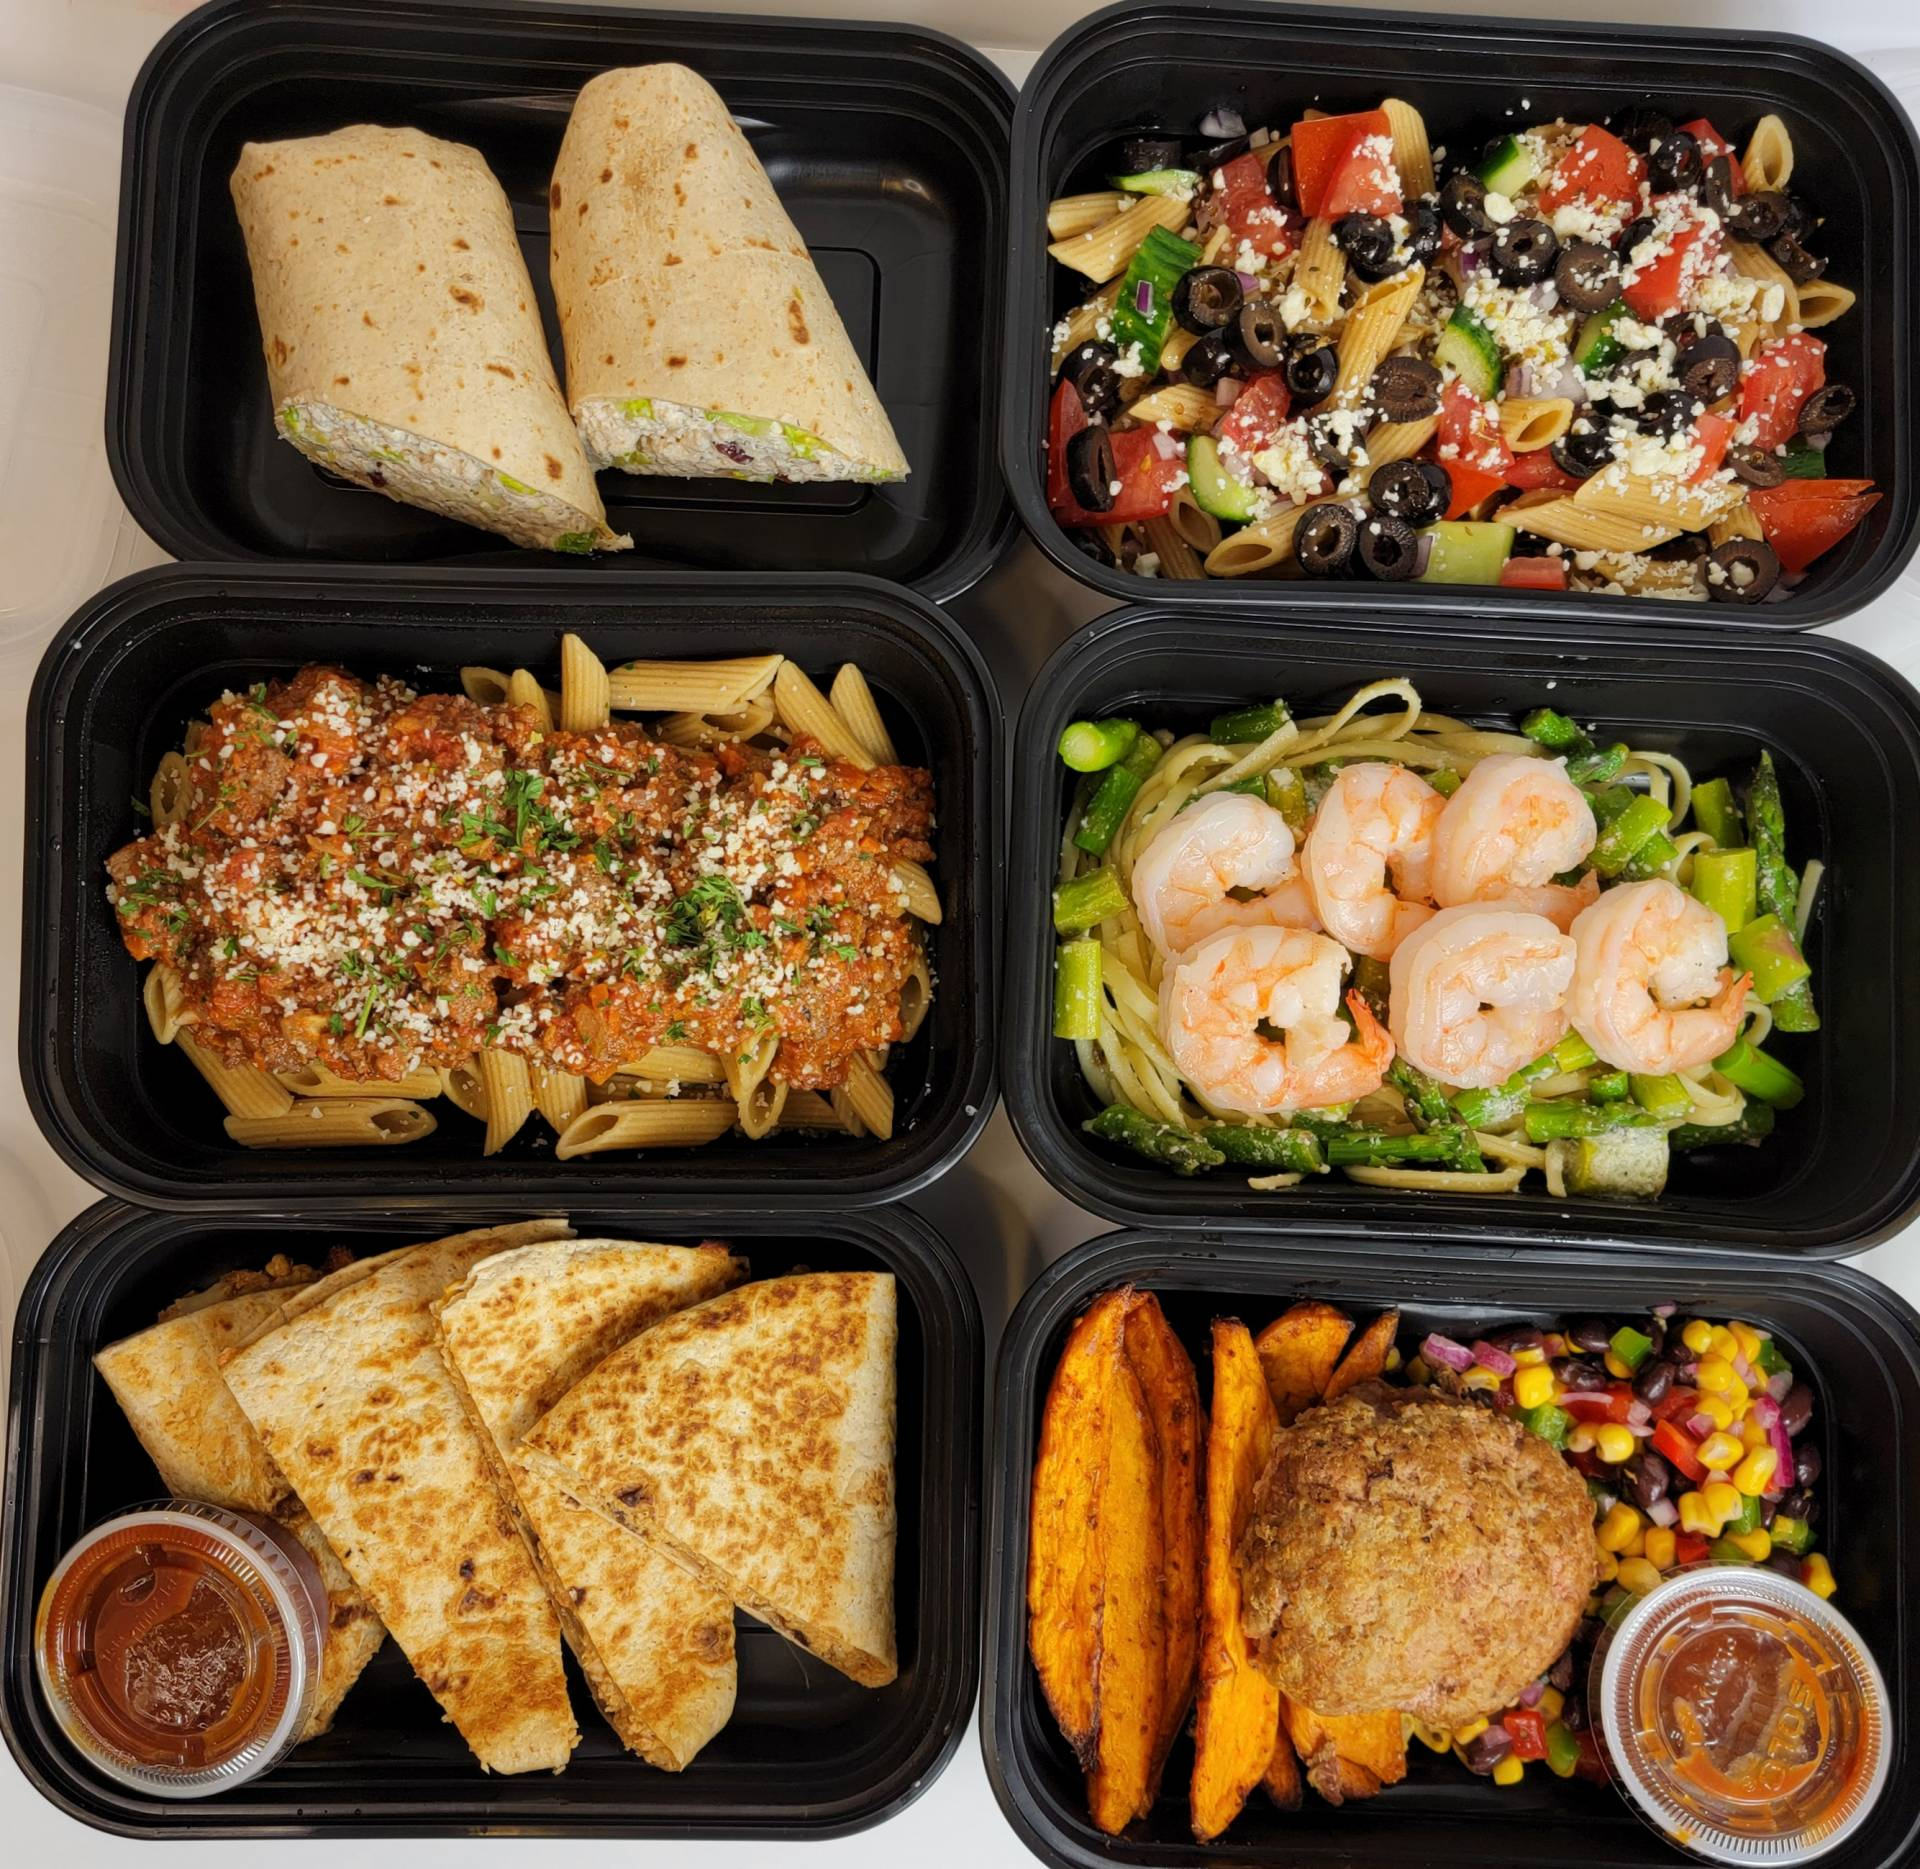 10 Entree Variety Pack (Lunch/Dinners)